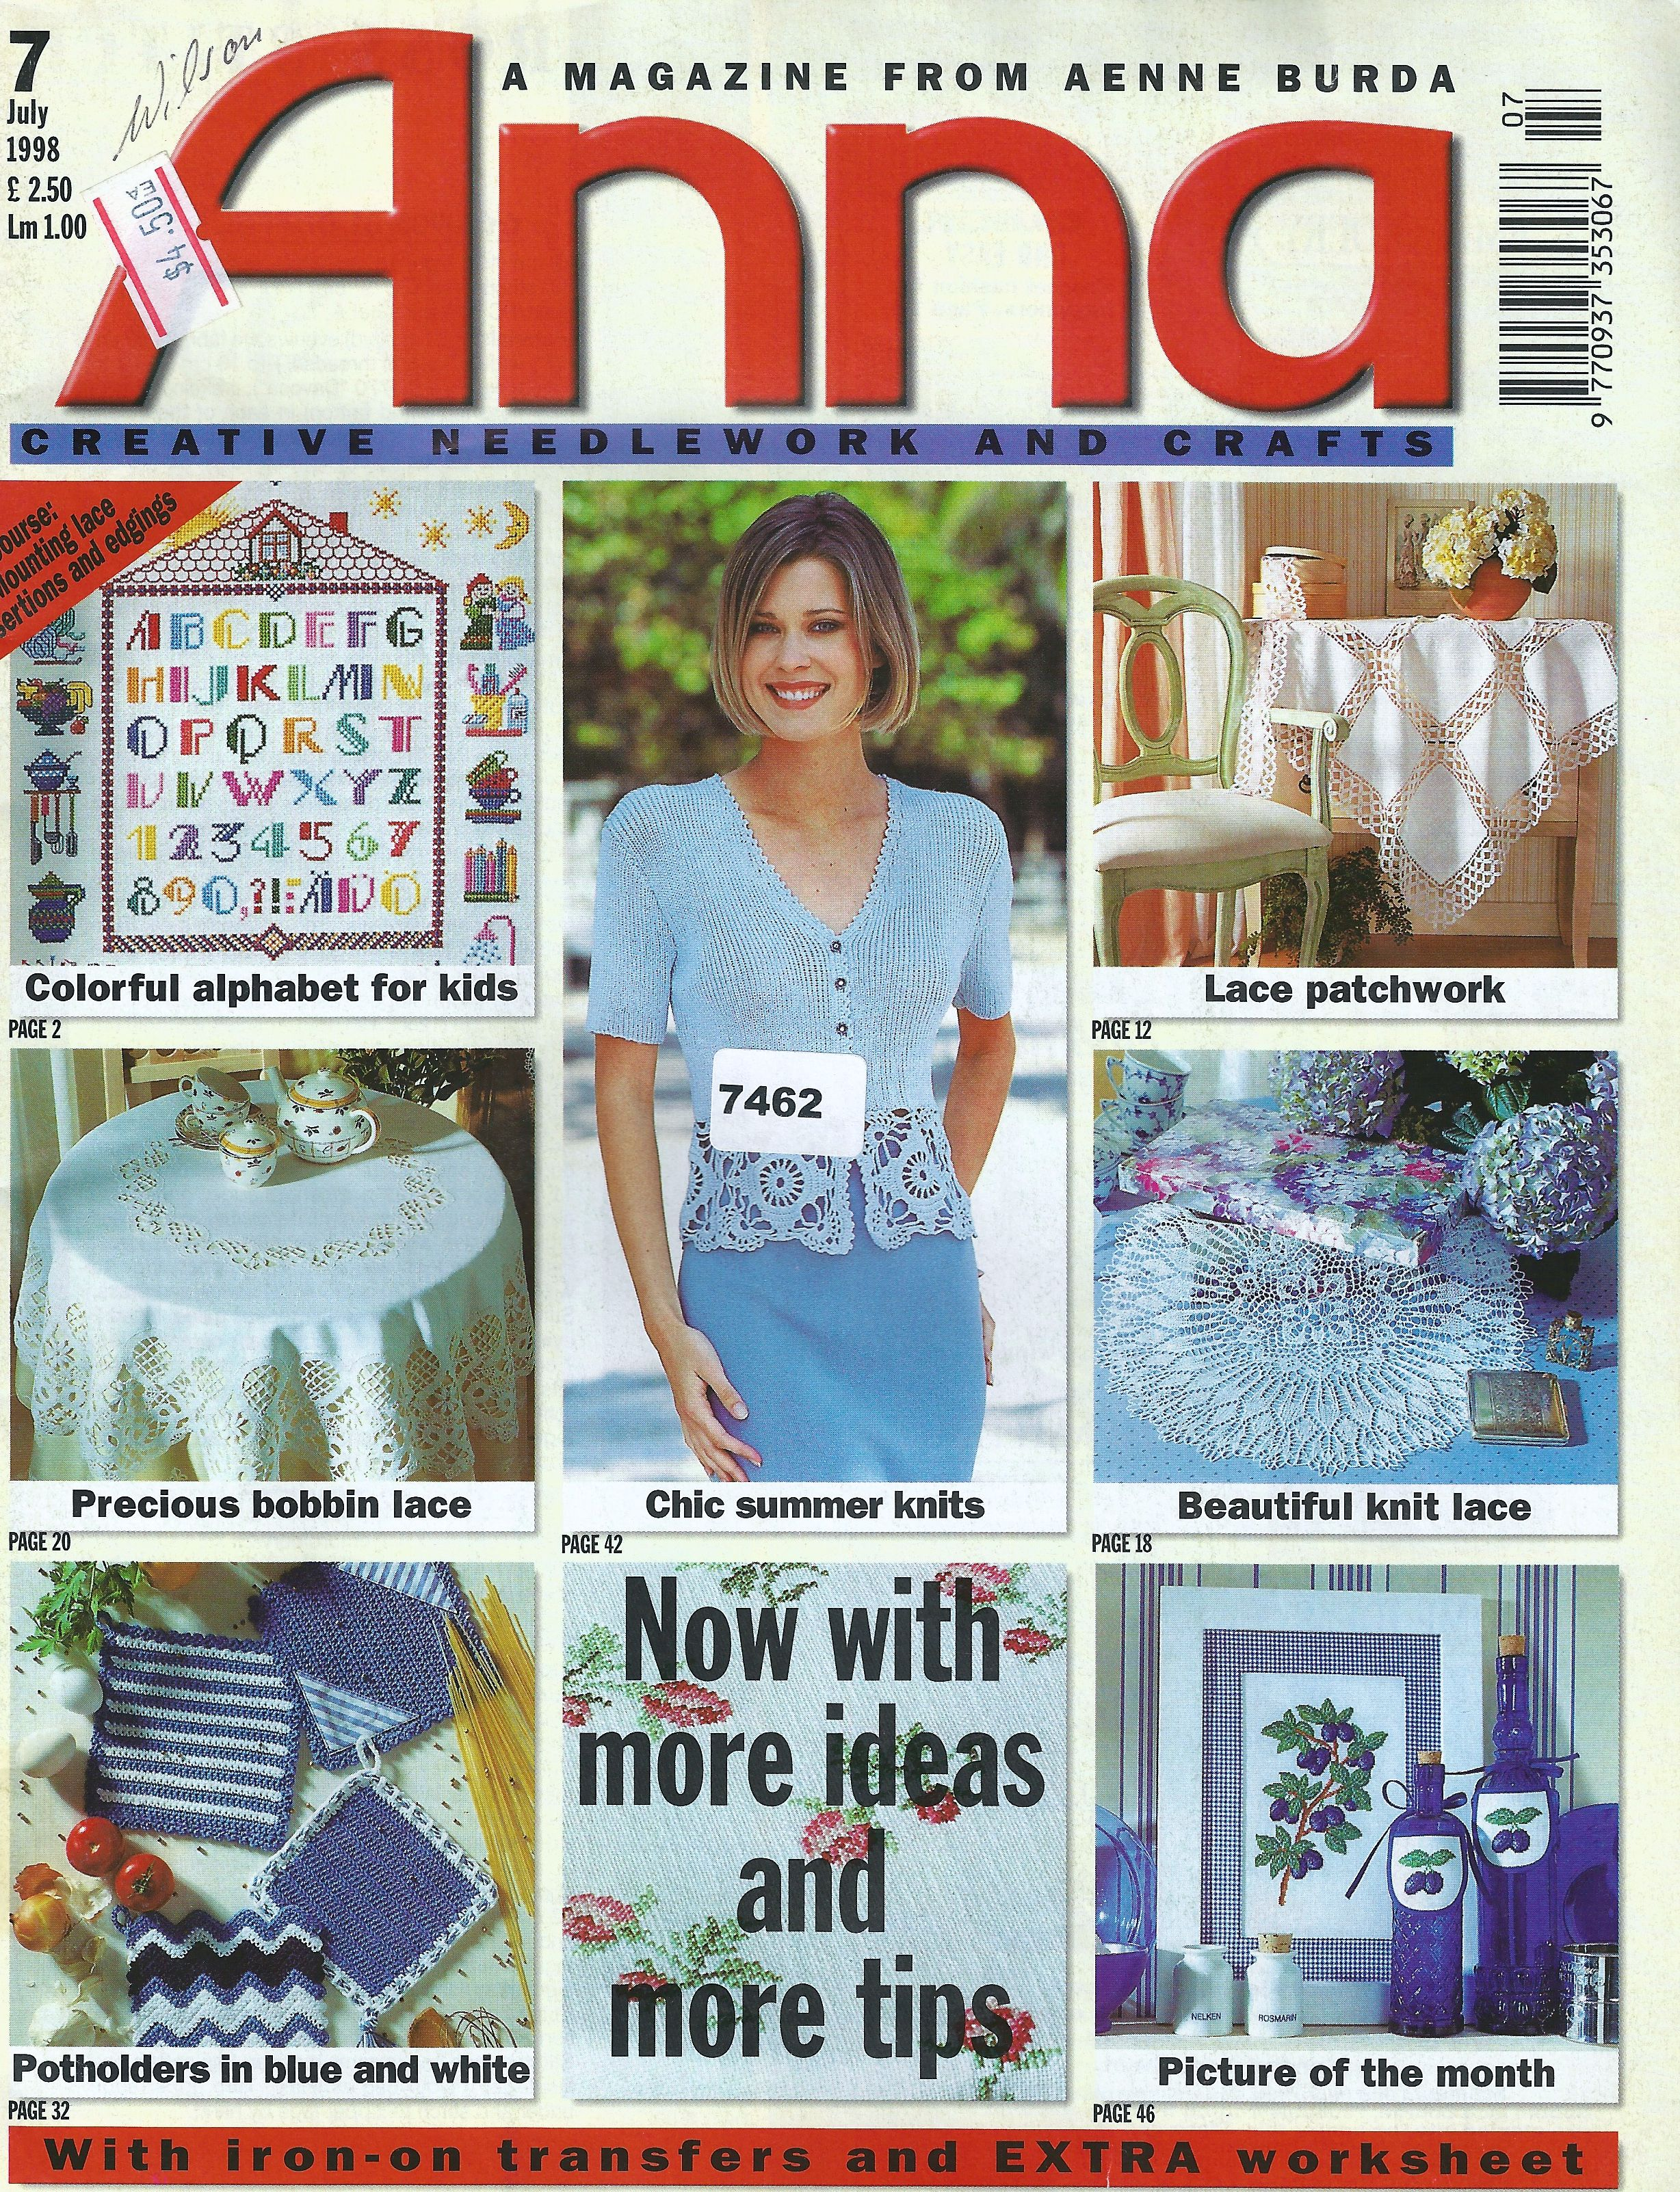 Macram crochet lace from the july 1998 edition of anna burda macram crochet lace from the july 1998 edition of anna burda bankloansurffo Images